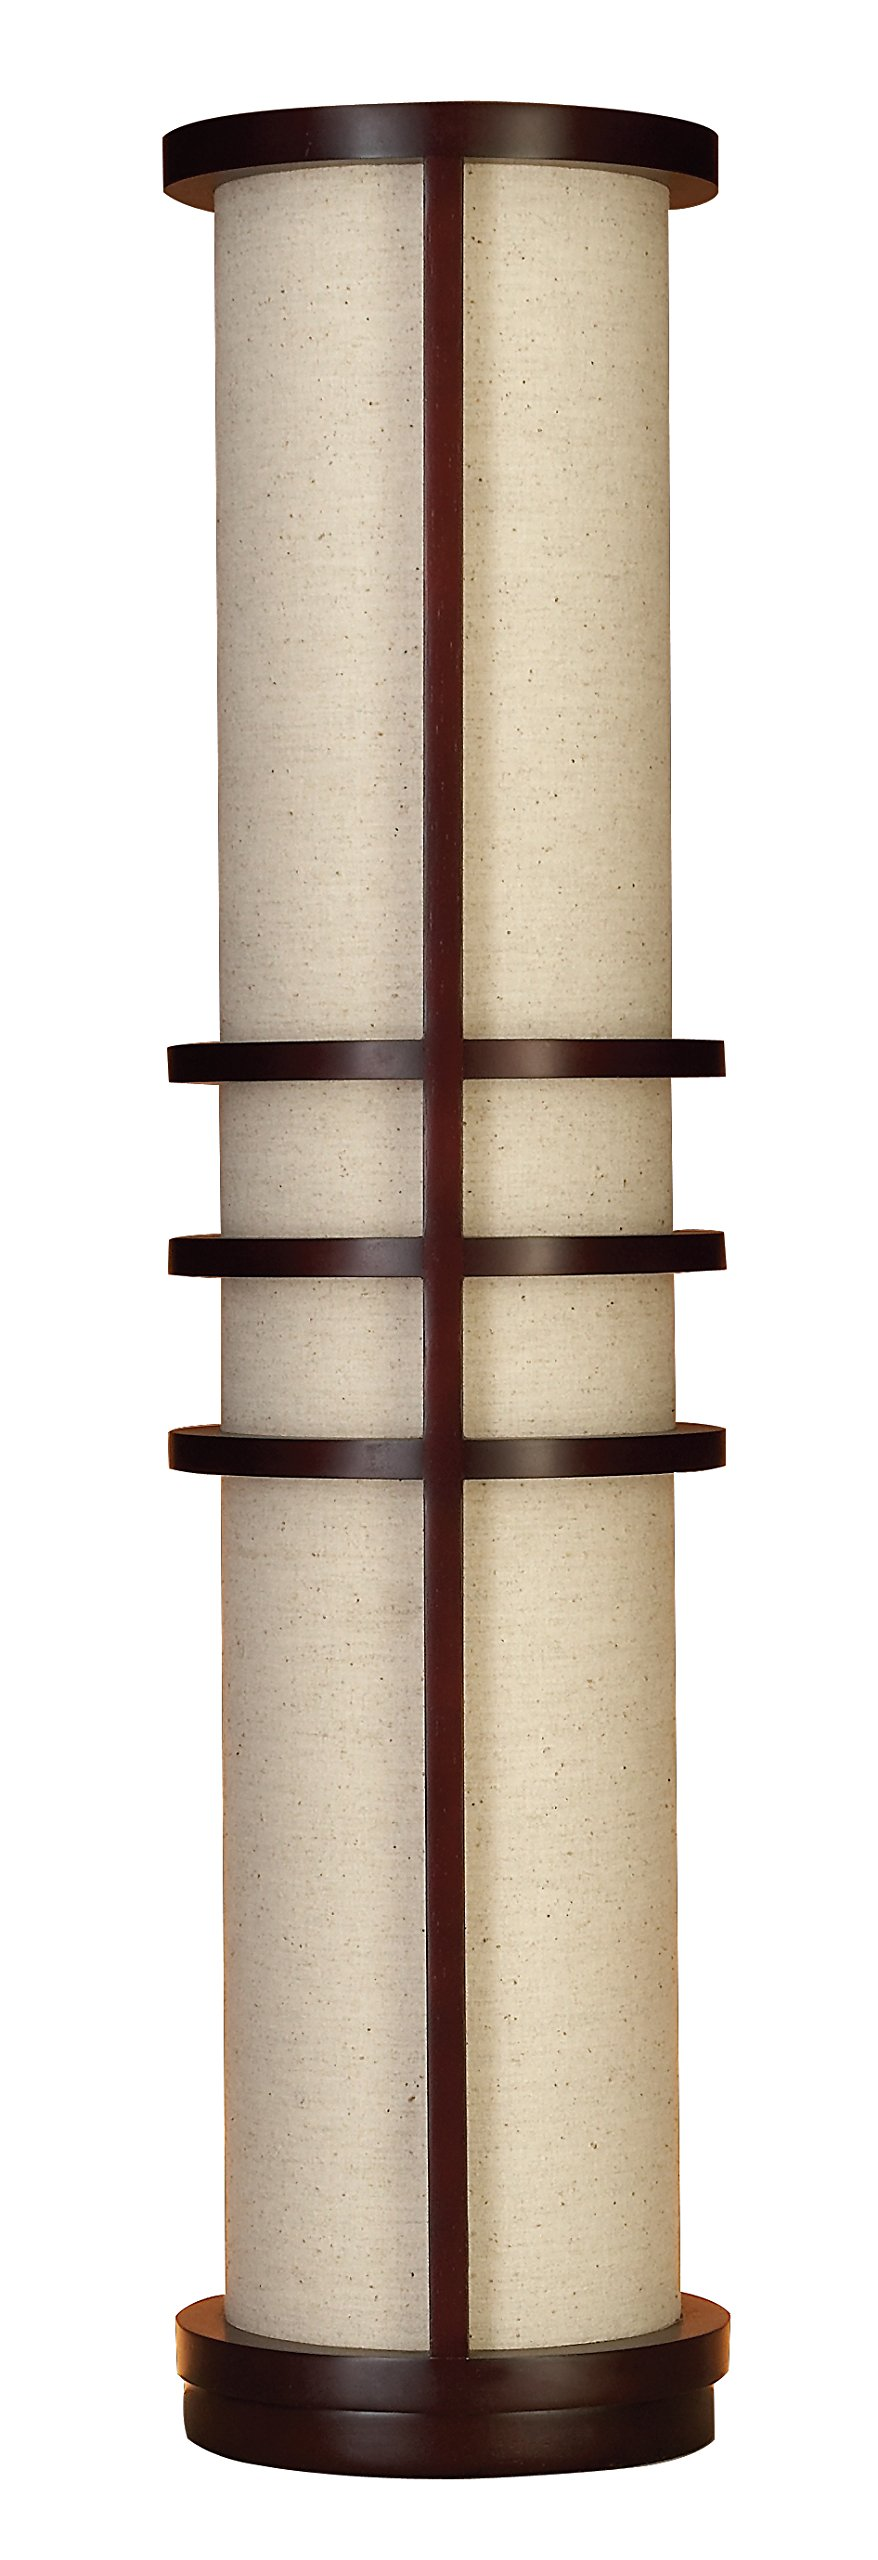 Deco 79 Wood Floor Lamp Made of Brown Wood